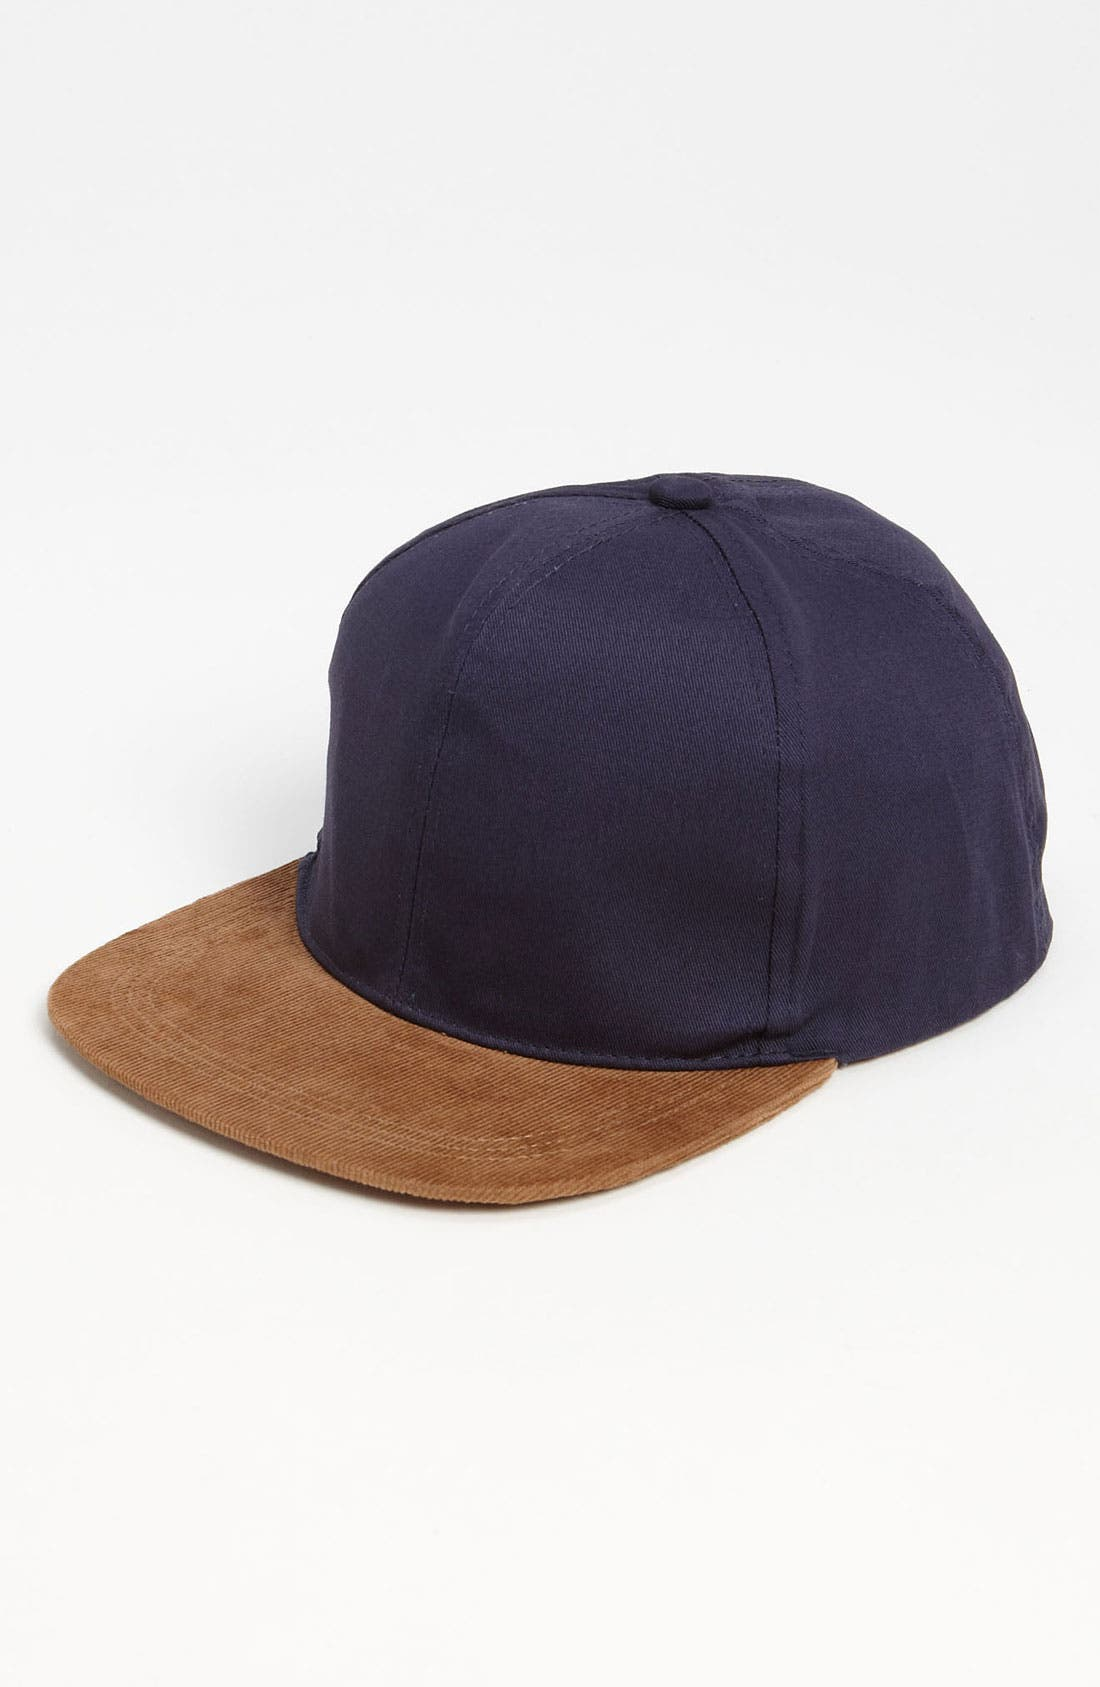 Alternate Image 1 Selected - Topman Corduroy Snapback Cap